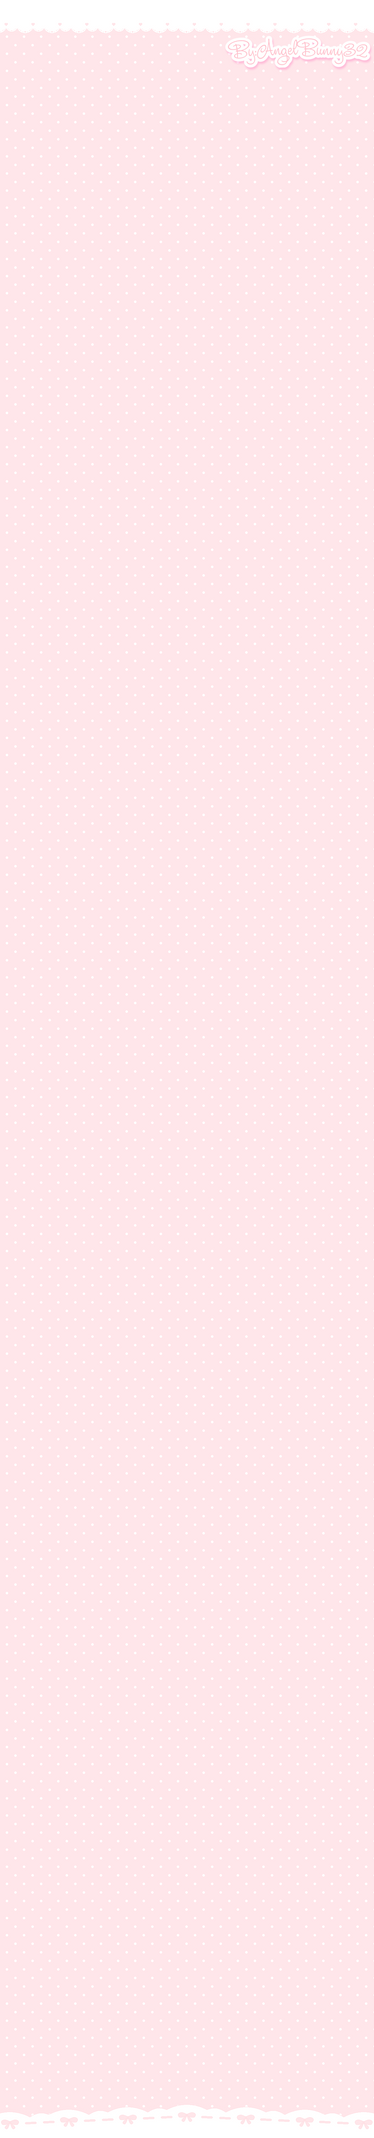 Kawaii pink Box background by angelbunny32